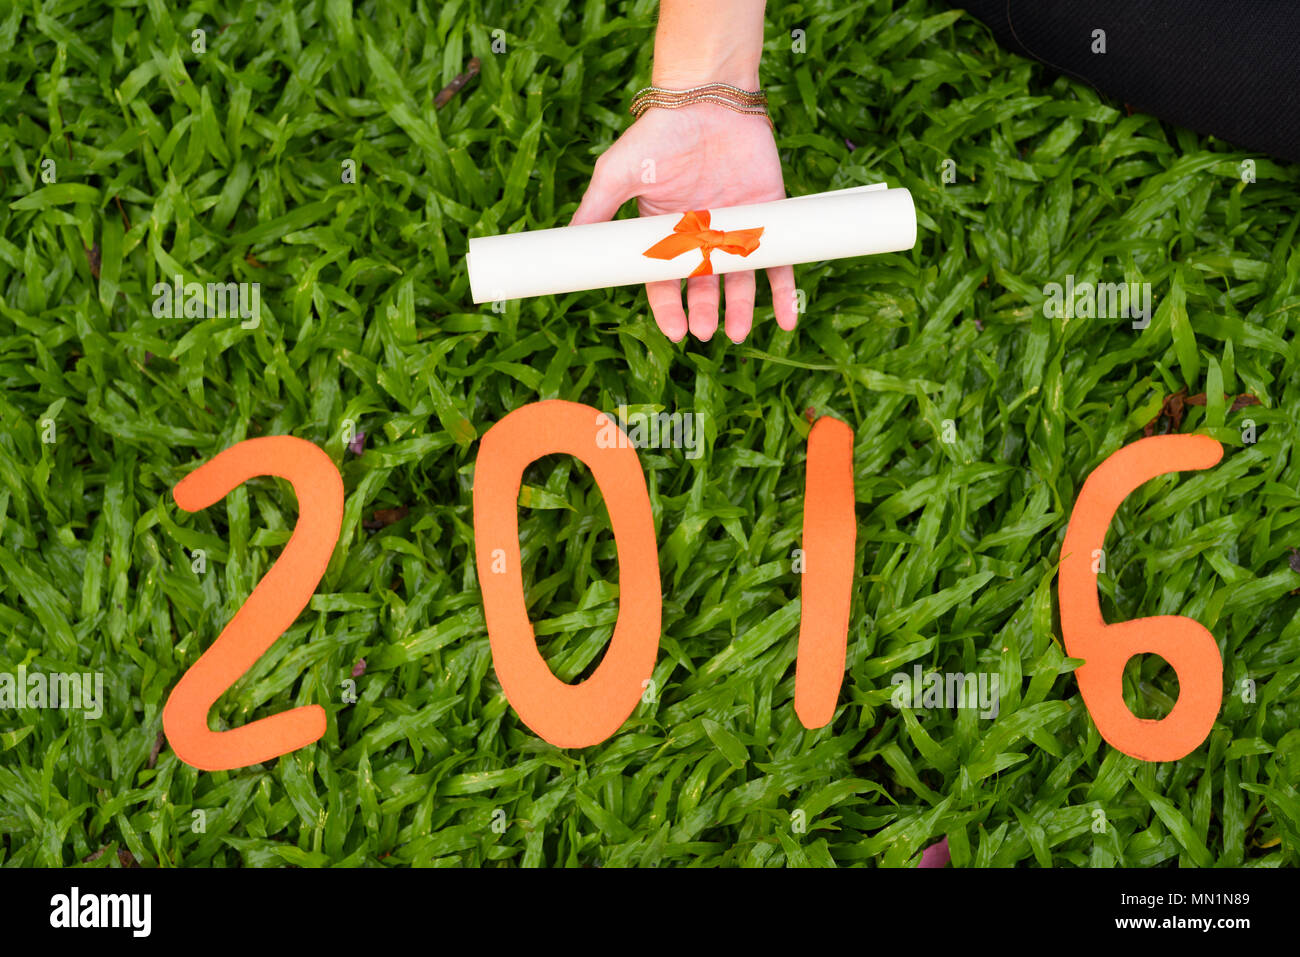 Young Woman's Hand Holding Diploma With 2016 Sign - Stock Image